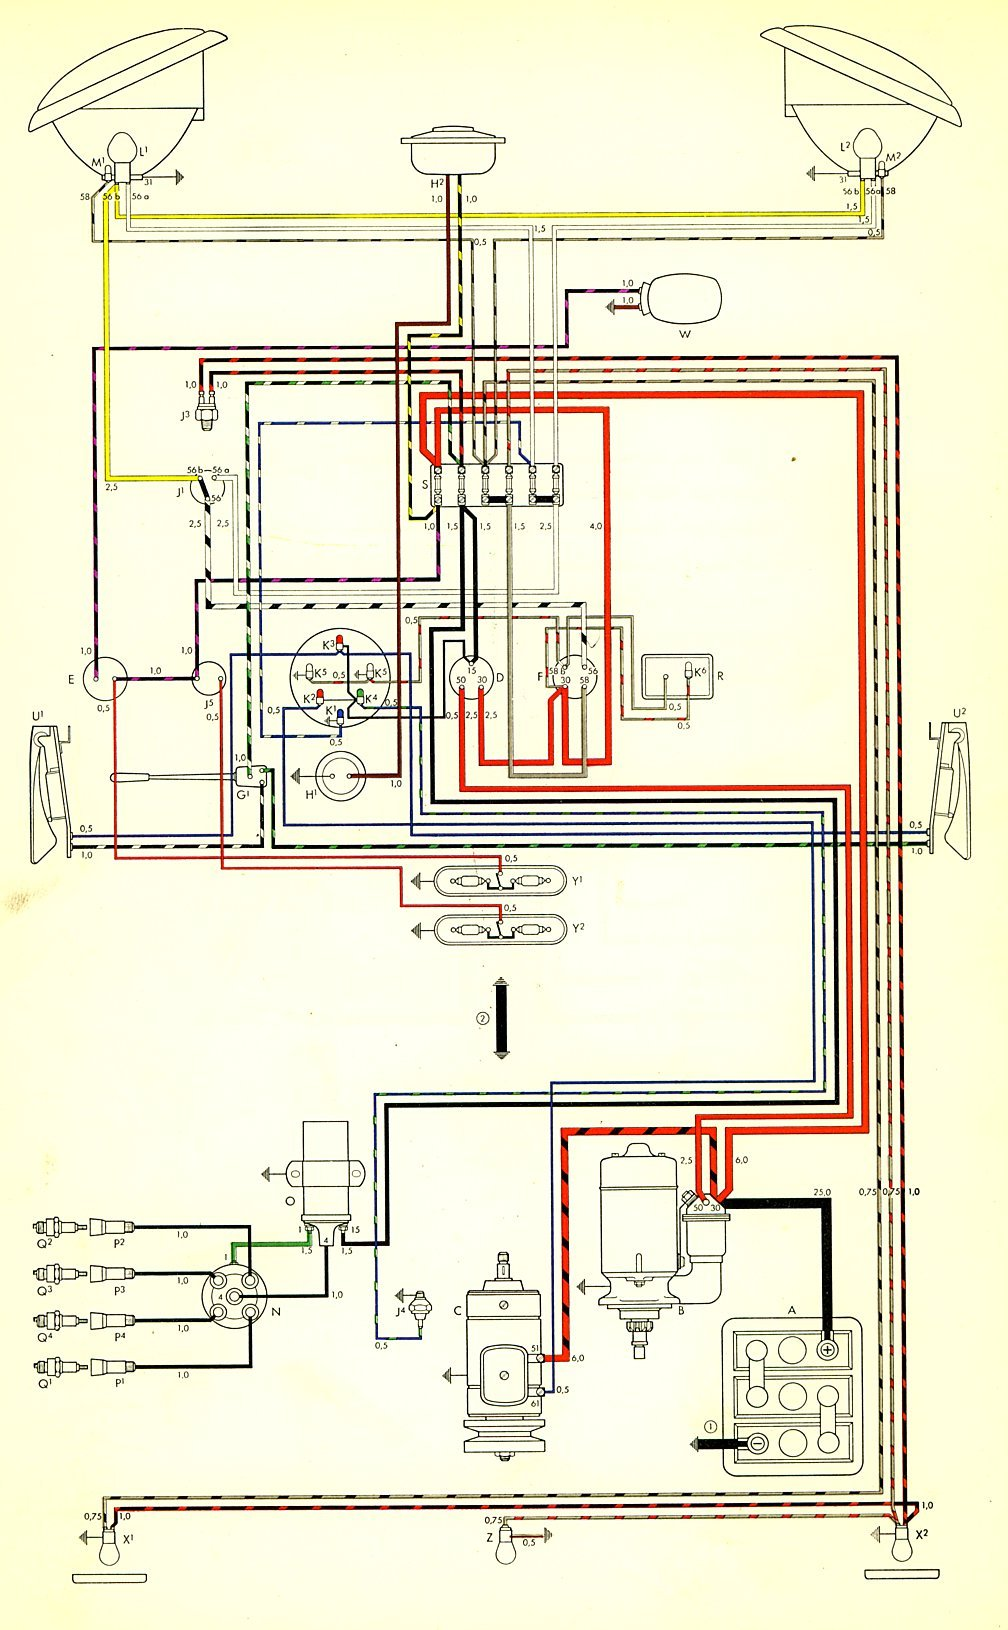 DIAGRAM] 1970 Bus Wiring Diagram FULL Version HD Quality Wiring Diagram -  SOADIAGRAM.DOMENICANIPISTOIA.IT | Bus Electrical Wiring Diagrams |  | soadiagram.domenicanipistoia.it